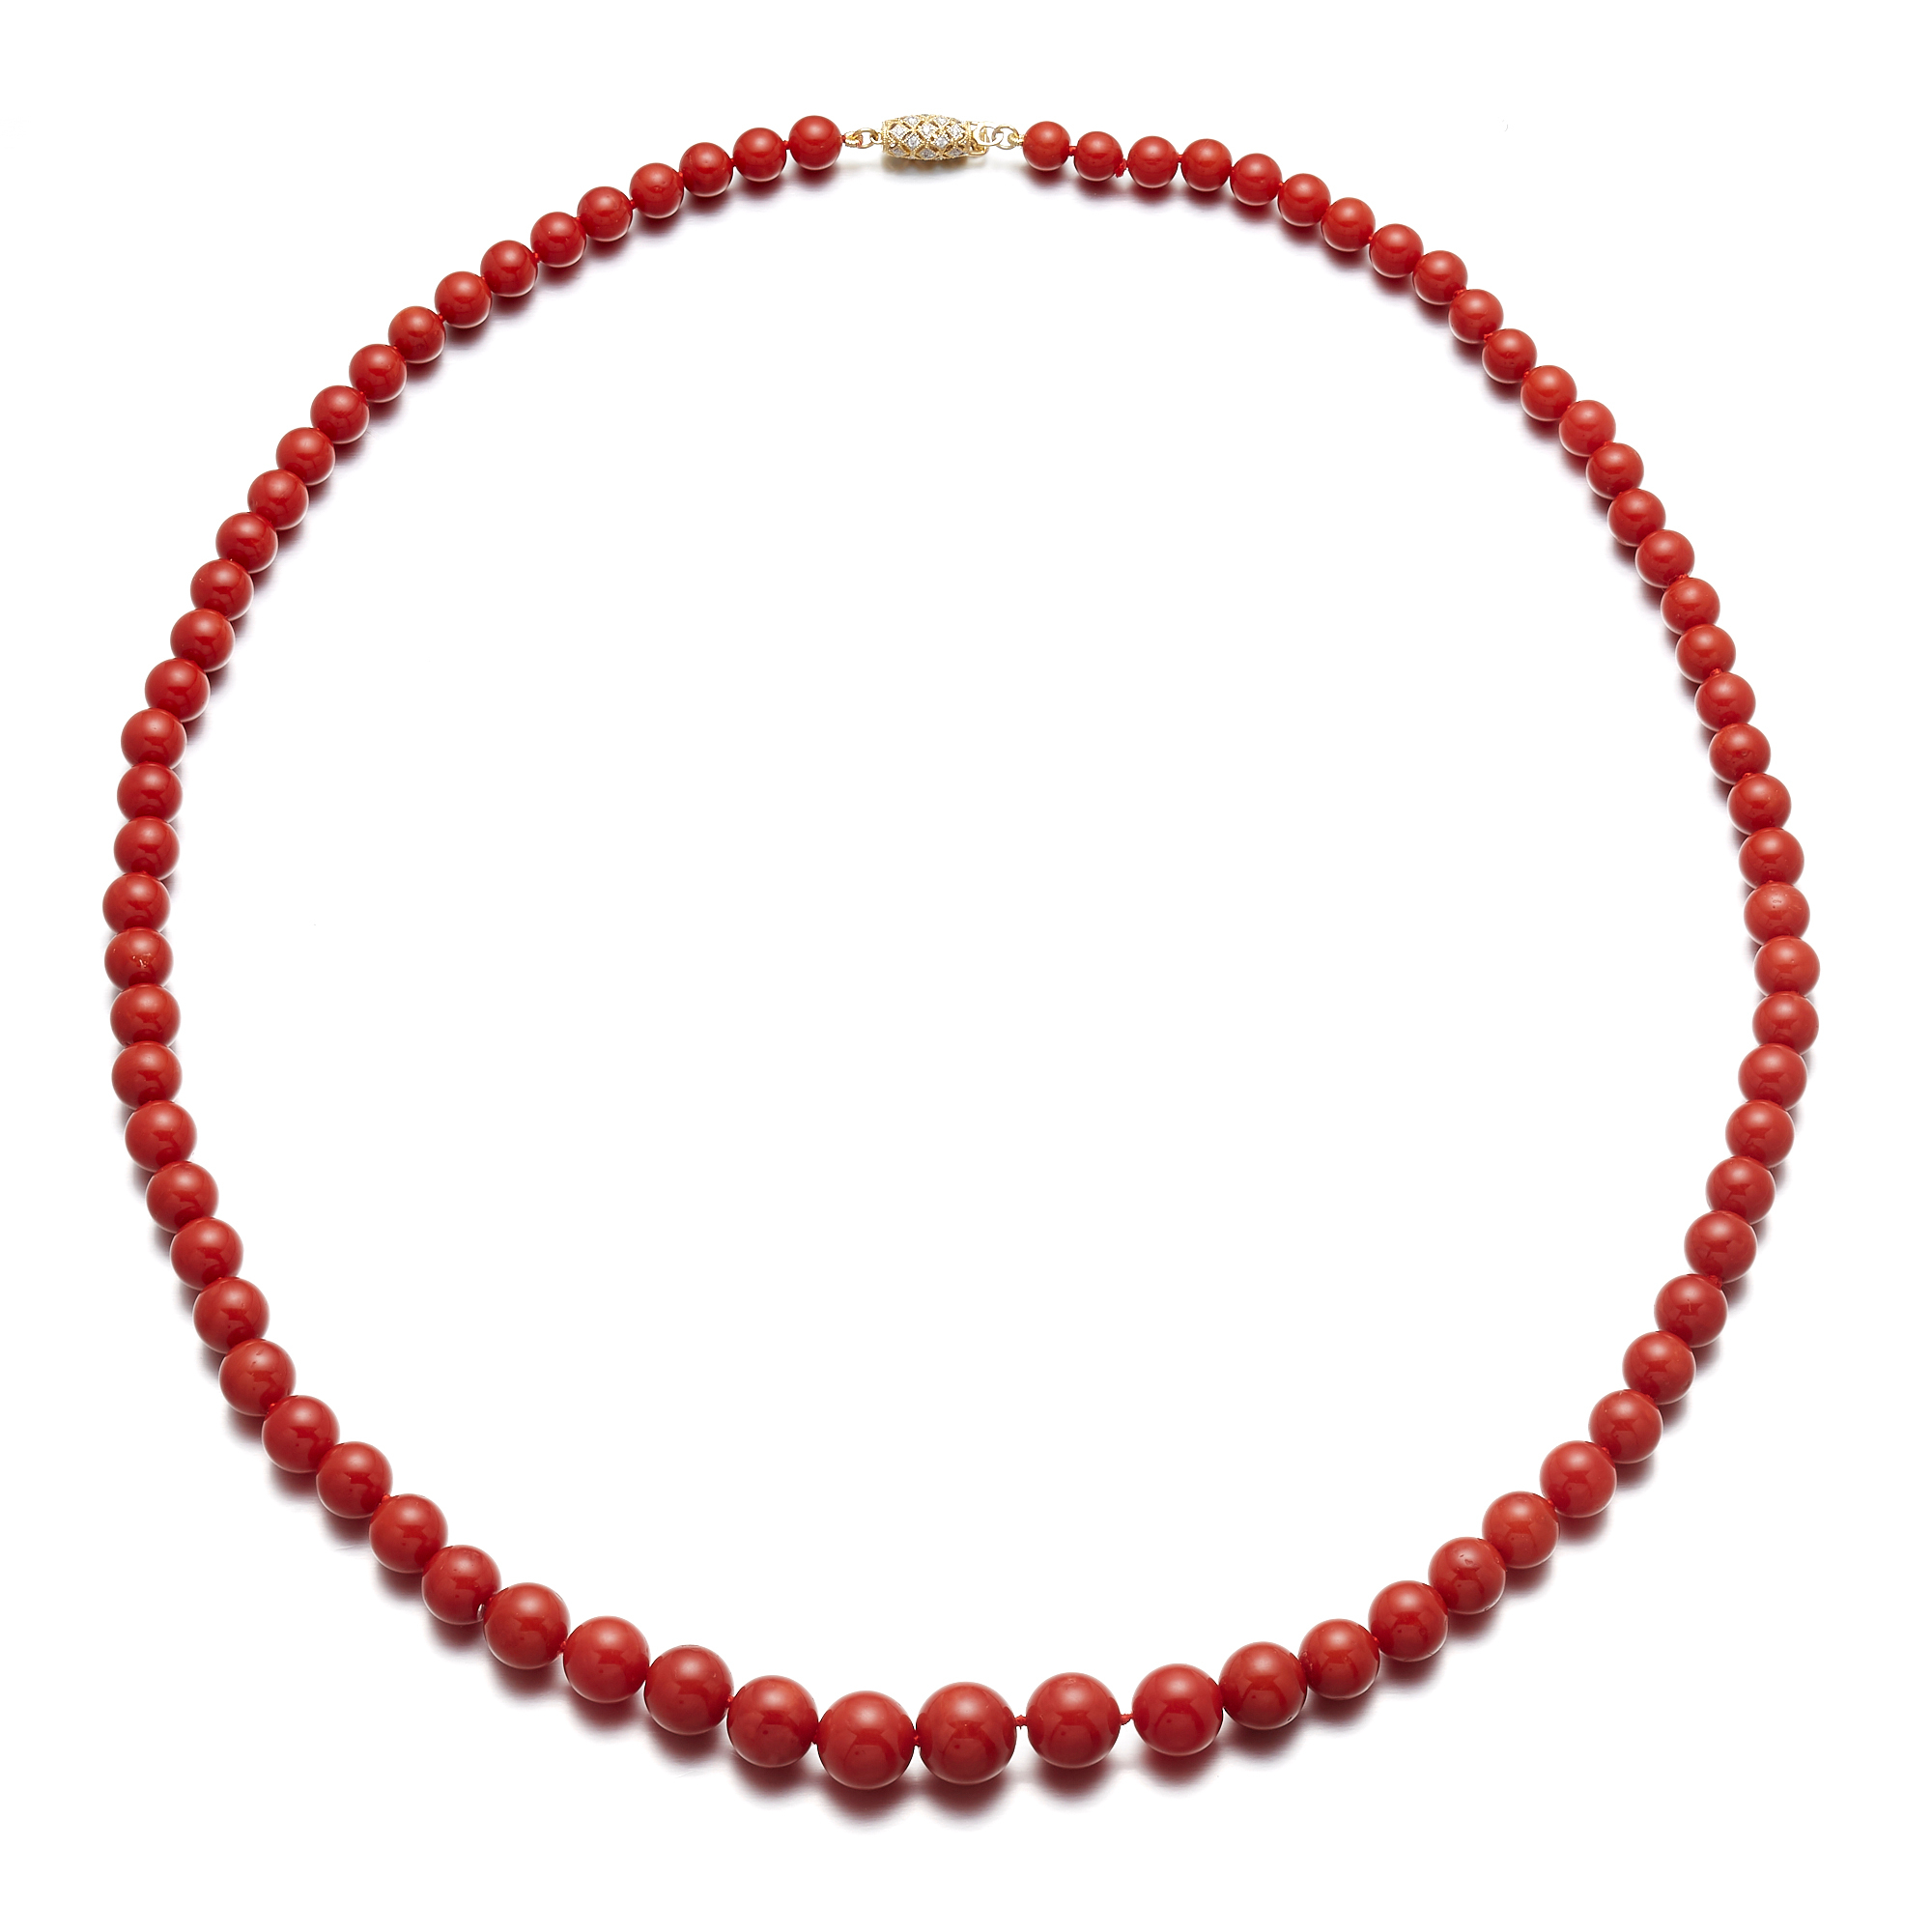 Gump's Graduated Red Coral Necklace